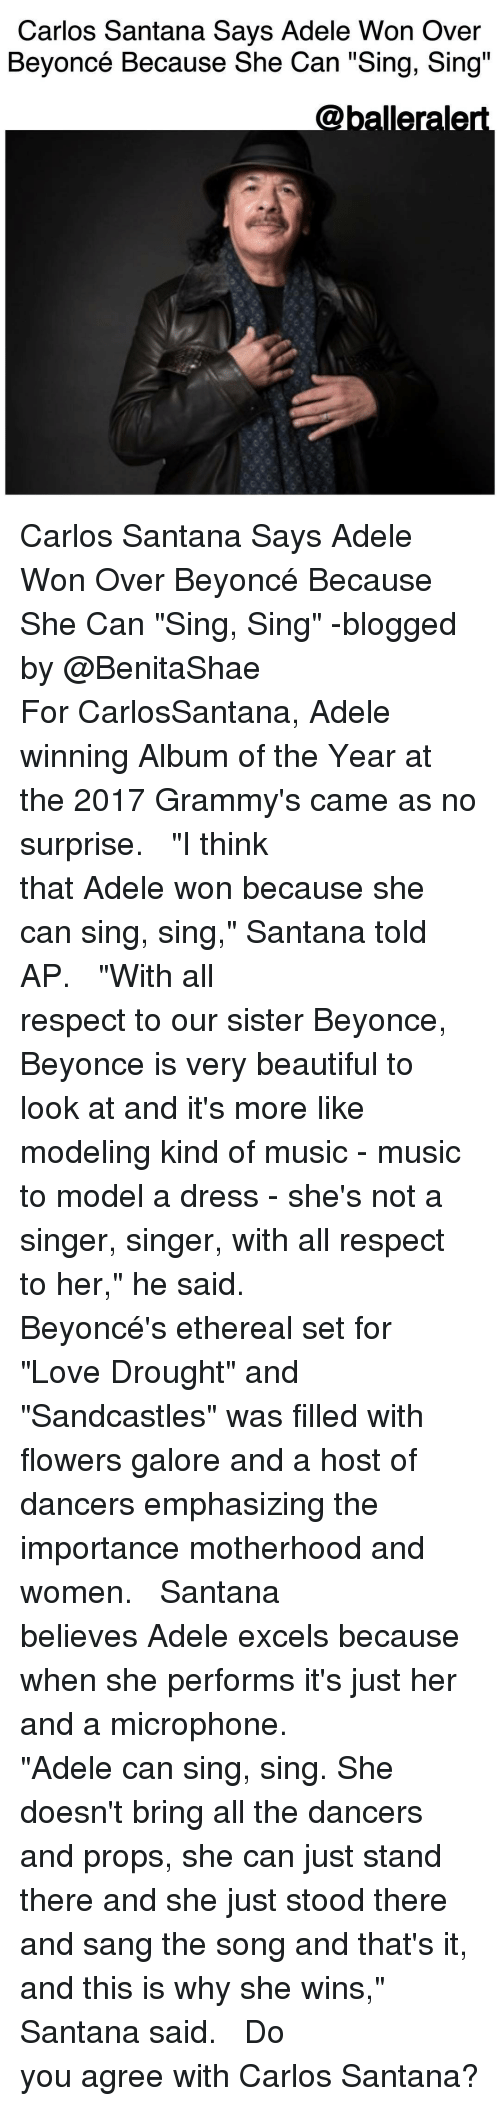 """Adele, Beautiful, and Beyonce: Carlos Santana Says Adele Won Over  Beyoncé Because She Can """"Sing, Sing""""  Caballerale Carlos Santana Says Adele Won Over Beyoncé Because She Can """"Sing, Sing"""" -blogged by @BenitaShae ⠀⠀⠀⠀⠀⠀⠀⠀⠀ ⠀⠀⠀⠀⠀⠀⠀⠀⠀ For CarlosSantana, Adele winning Album of the Year at the 2017 Grammy's came as no surprise. ⠀⠀⠀⠀⠀⠀⠀⠀⠀ ⠀⠀⠀⠀⠀⠀⠀⠀⠀ """"I think that Adele won because she can sing, sing,"""" Santana told AP. ⠀⠀⠀⠀⠀⠀⠀⠀⠀ ⠀⠀⠀⠀⠀⠀⠀⠀⠀ """"With all respect to our sister Beyonce, Beyonce is very beautiful to look at and it's more like modeling kind of music - music to model a dress - she's not a singer, singer, with all respect to her,"""" he said. ⠀⠀⠀⠀⠀⠀⠀⠀⠀ ⠀⠀⠀⠀⠀⠀⠀⠀⠀ Beyoncé's ethereal set for """"Love Drought"""" and """"Sandcastles"""" was filled with flowers galore and a host of dancers emphasizing the importance motherhood and women. ⠀⠀⠀⠀⠀⠀⠀⠀⠀ ⠀⠀⠀⠀⠀⠀⠀⠀⠀ Santana believes Adele excels because when she performs it's just her and a microphone. ⠀⠀⠀⠀⠀⠀⠀⠀⠀ ⠀⠀⠀⠀⠀⠀⠀⠀⠀ """"Adele can sing, sing. She doesn't bring all the dancers and props, she can just stand there and she just stood there and sang the song and that's it, and this is why she wins,"""" Santana said. ⠀⠀⠀⠀⠀⠀⠀⠀⠀ ⠀⠀⠀⠀⠀⠀⠀⠀⠀ Do you agree with Carlos Santana?"""